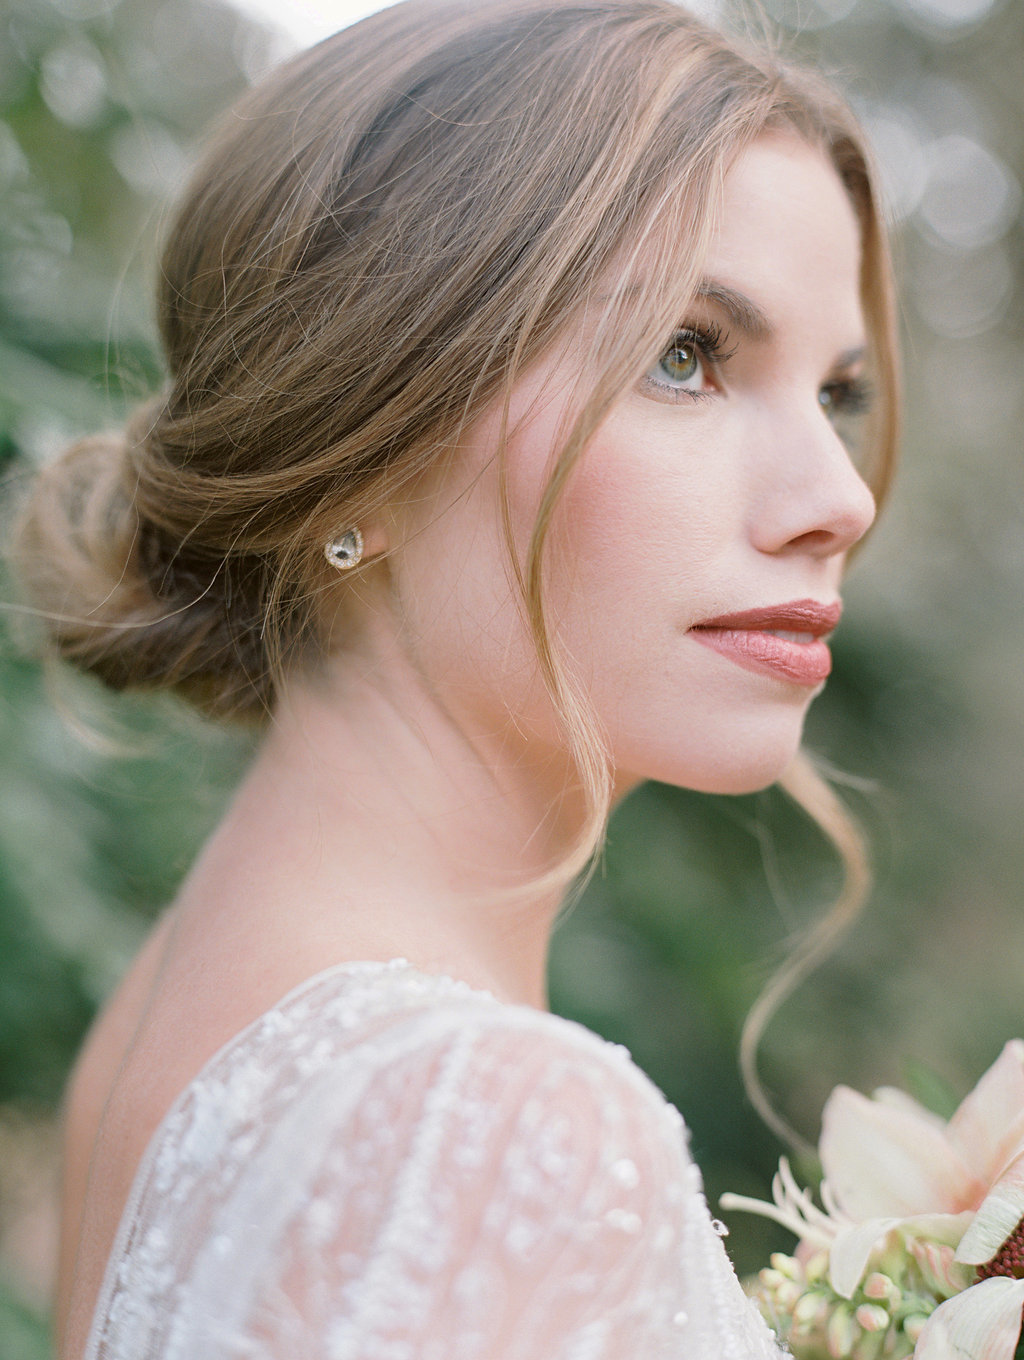 wavering-place-south-carolina-wedding-event-planner-jessica-rourke-380